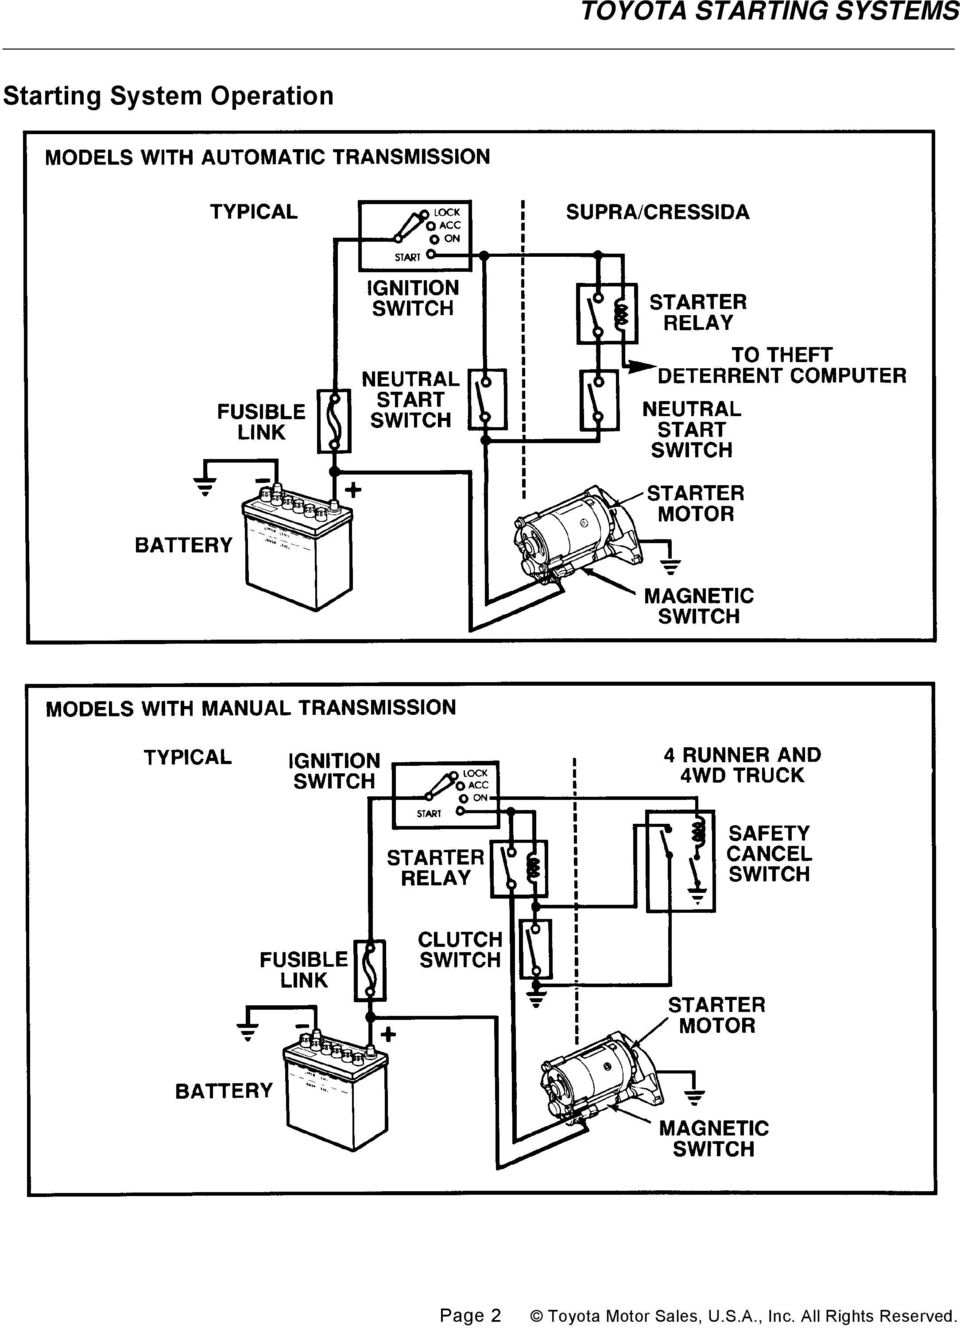 Toyota Starting Systems General Pdf Manual Transmission Clutch Diagram Parts Mpc 3 Motor Construction The Starter Motors Used On Vehicles Have A Magnetic Switch That Shifts Rotating Gear Pinion Into And